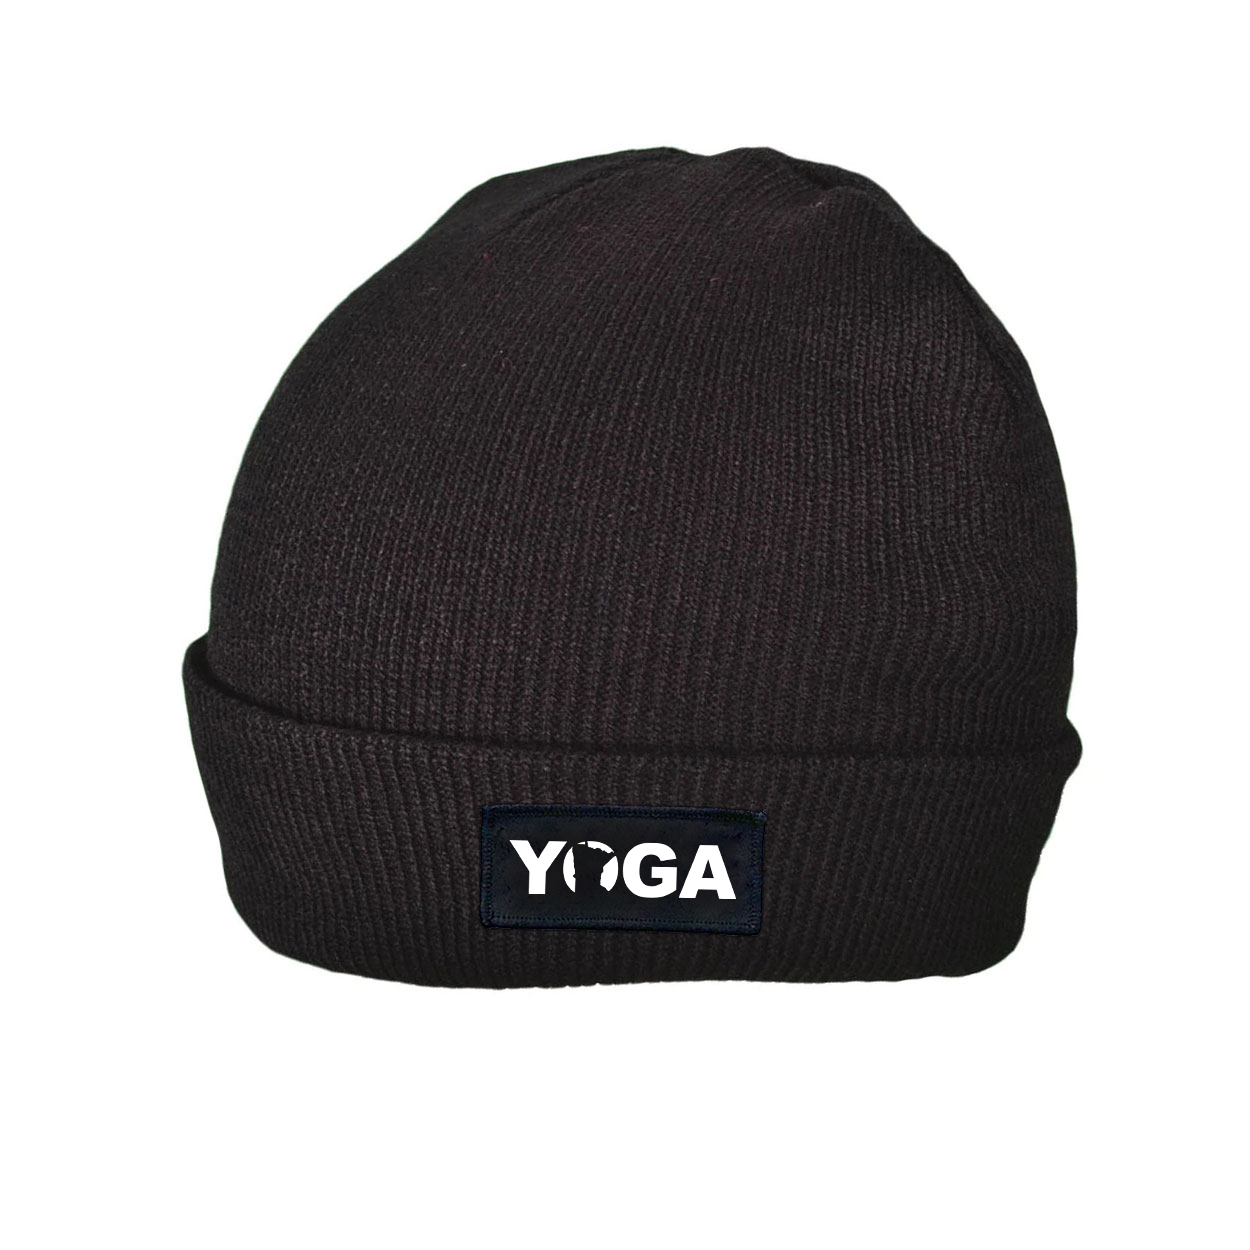 Yoga Minnesota Night Out Woven Patch Roll Up Skully Beanie Black (White Logo)